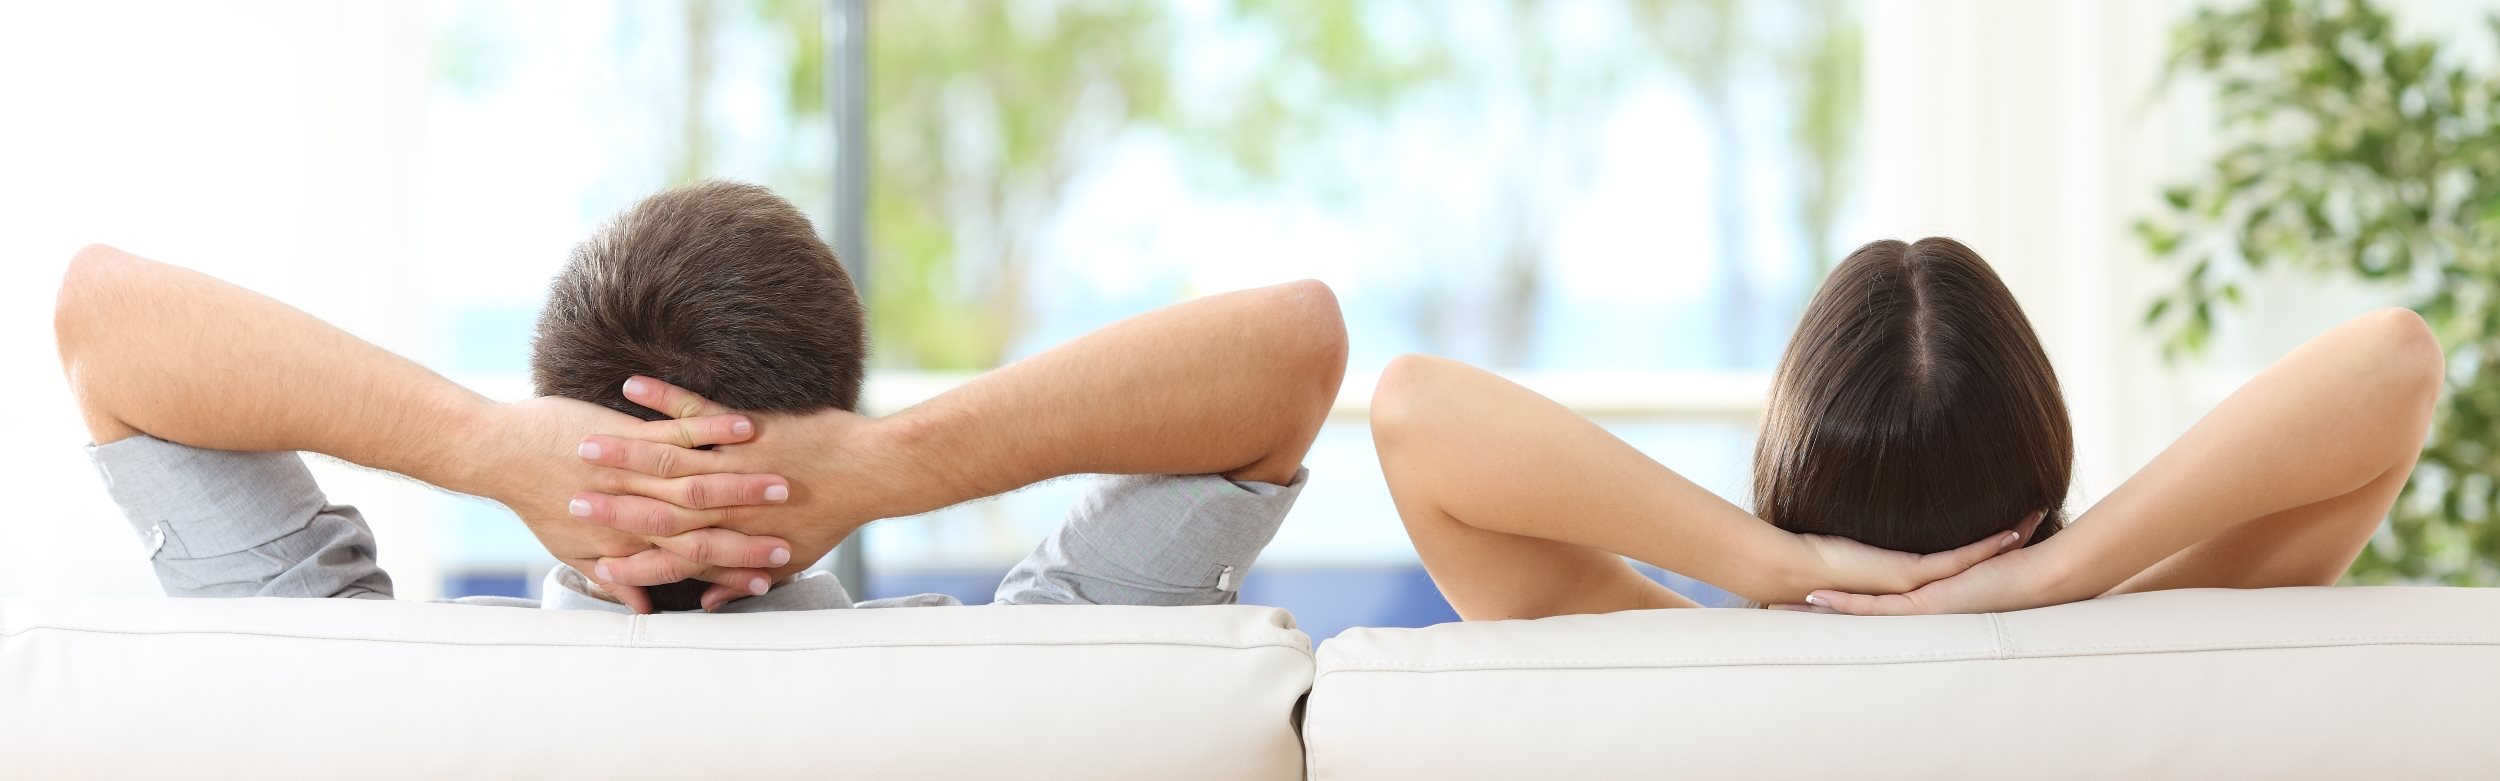 Couple Relaxing on Couch with Hands Behind Head